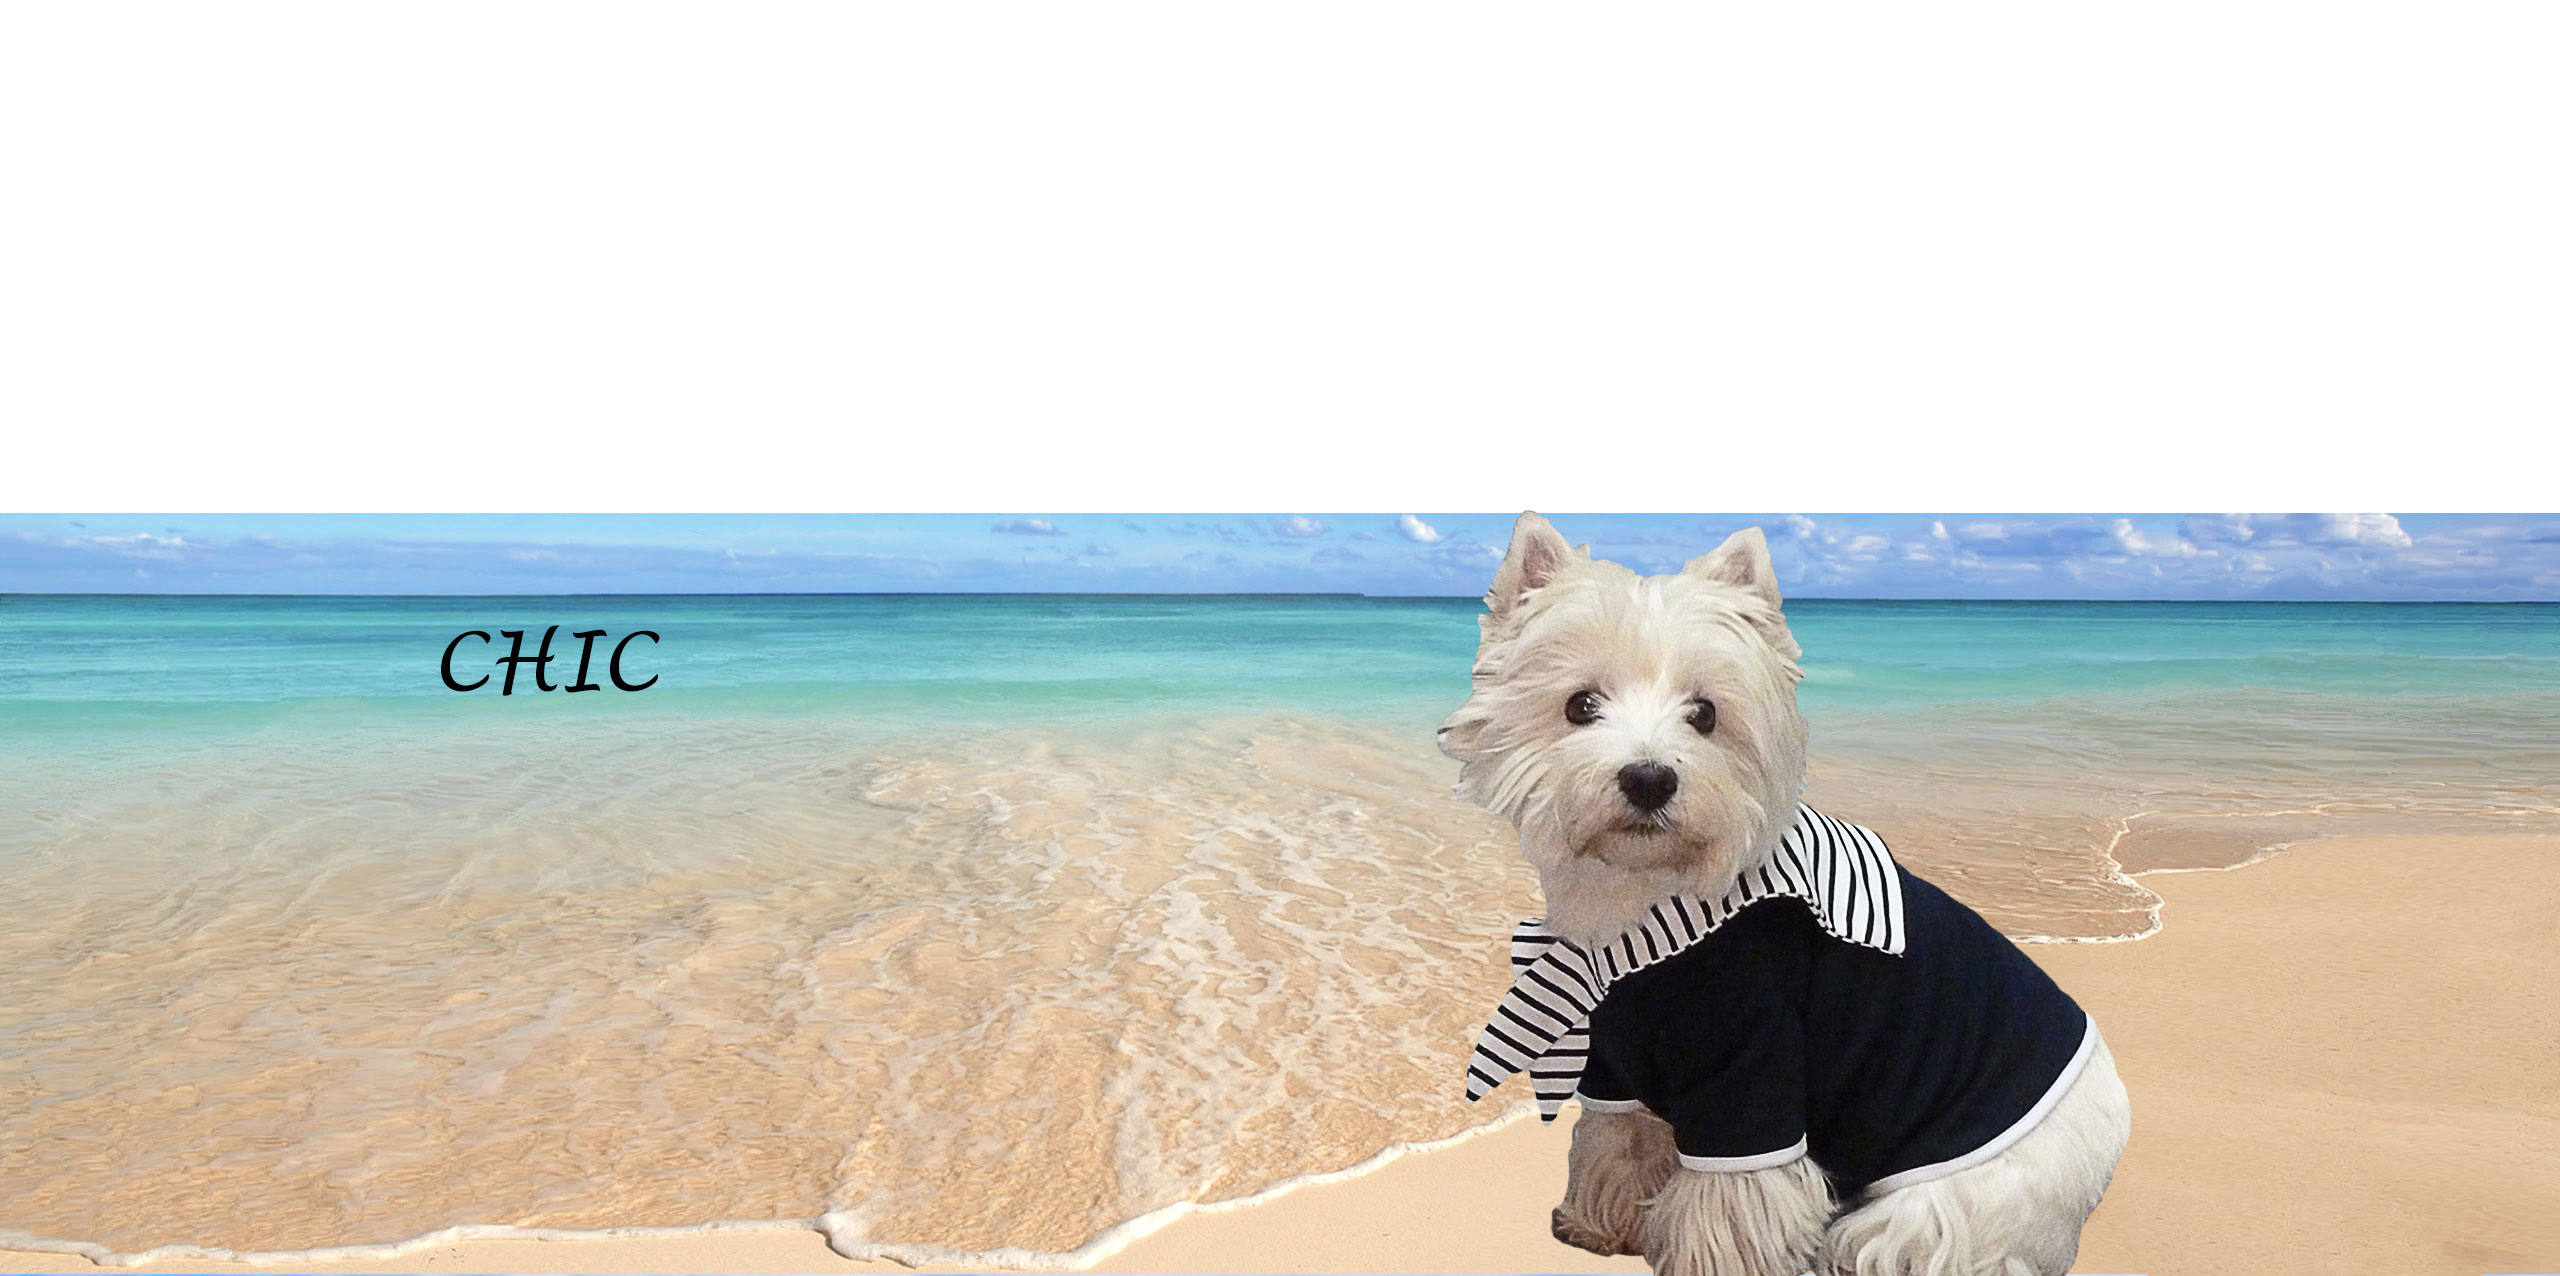 Dog-French-Touch-Biarritz-SailorSuit-Babou